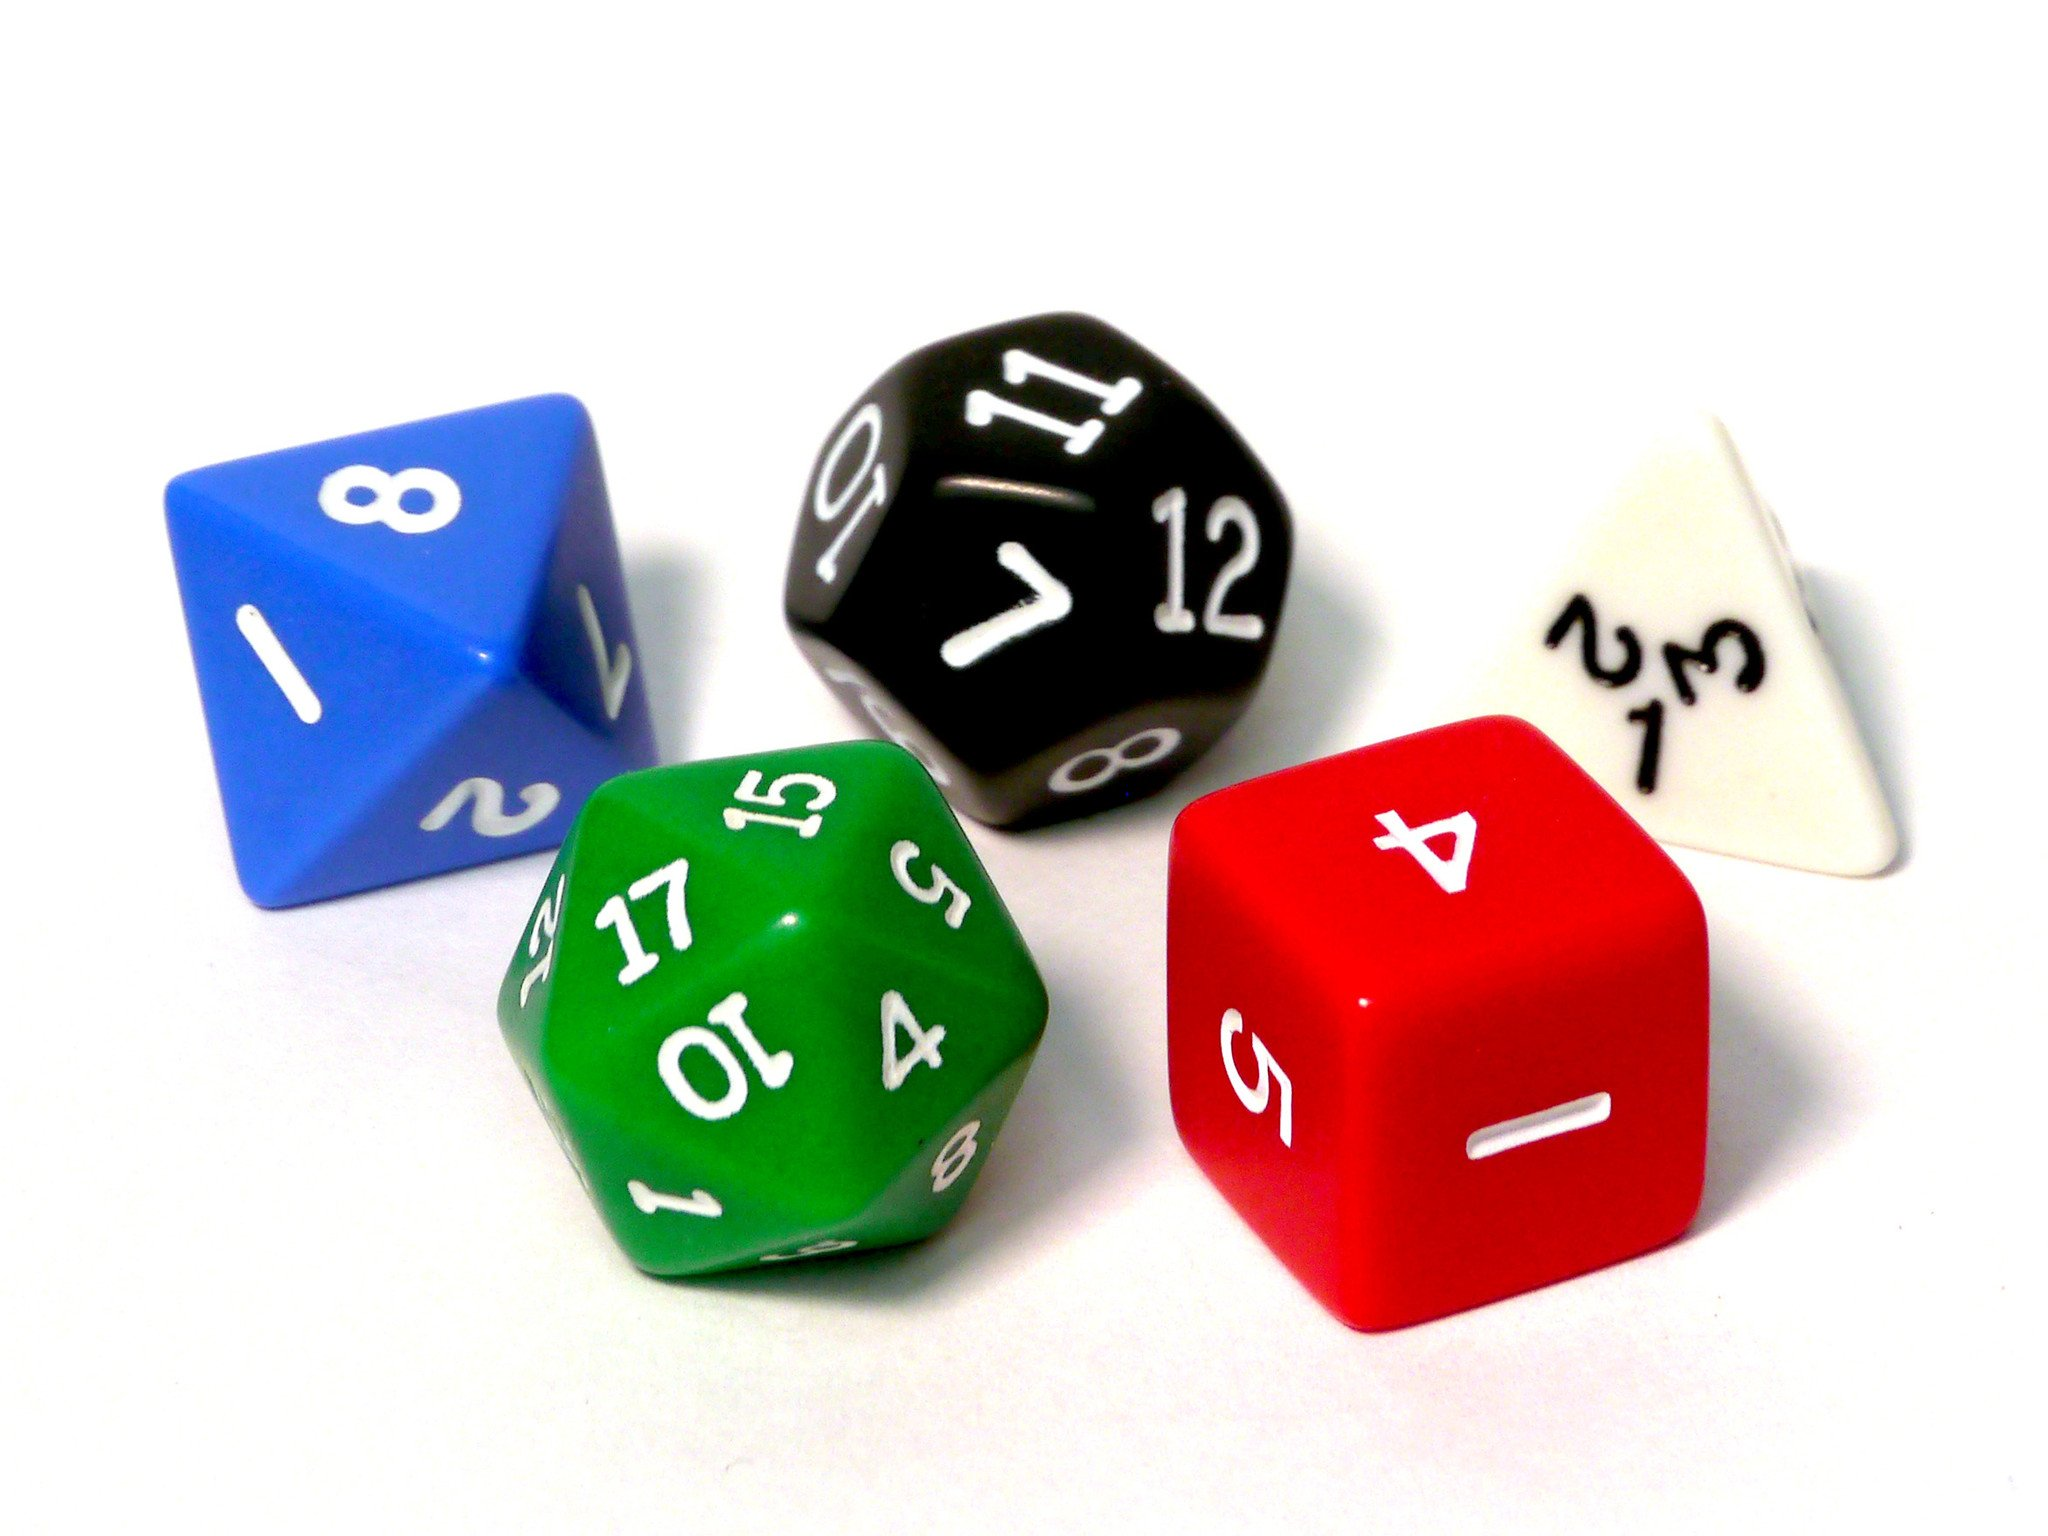 Platonic solids dice – Maths Gear - Mathematical curiosities, games ...